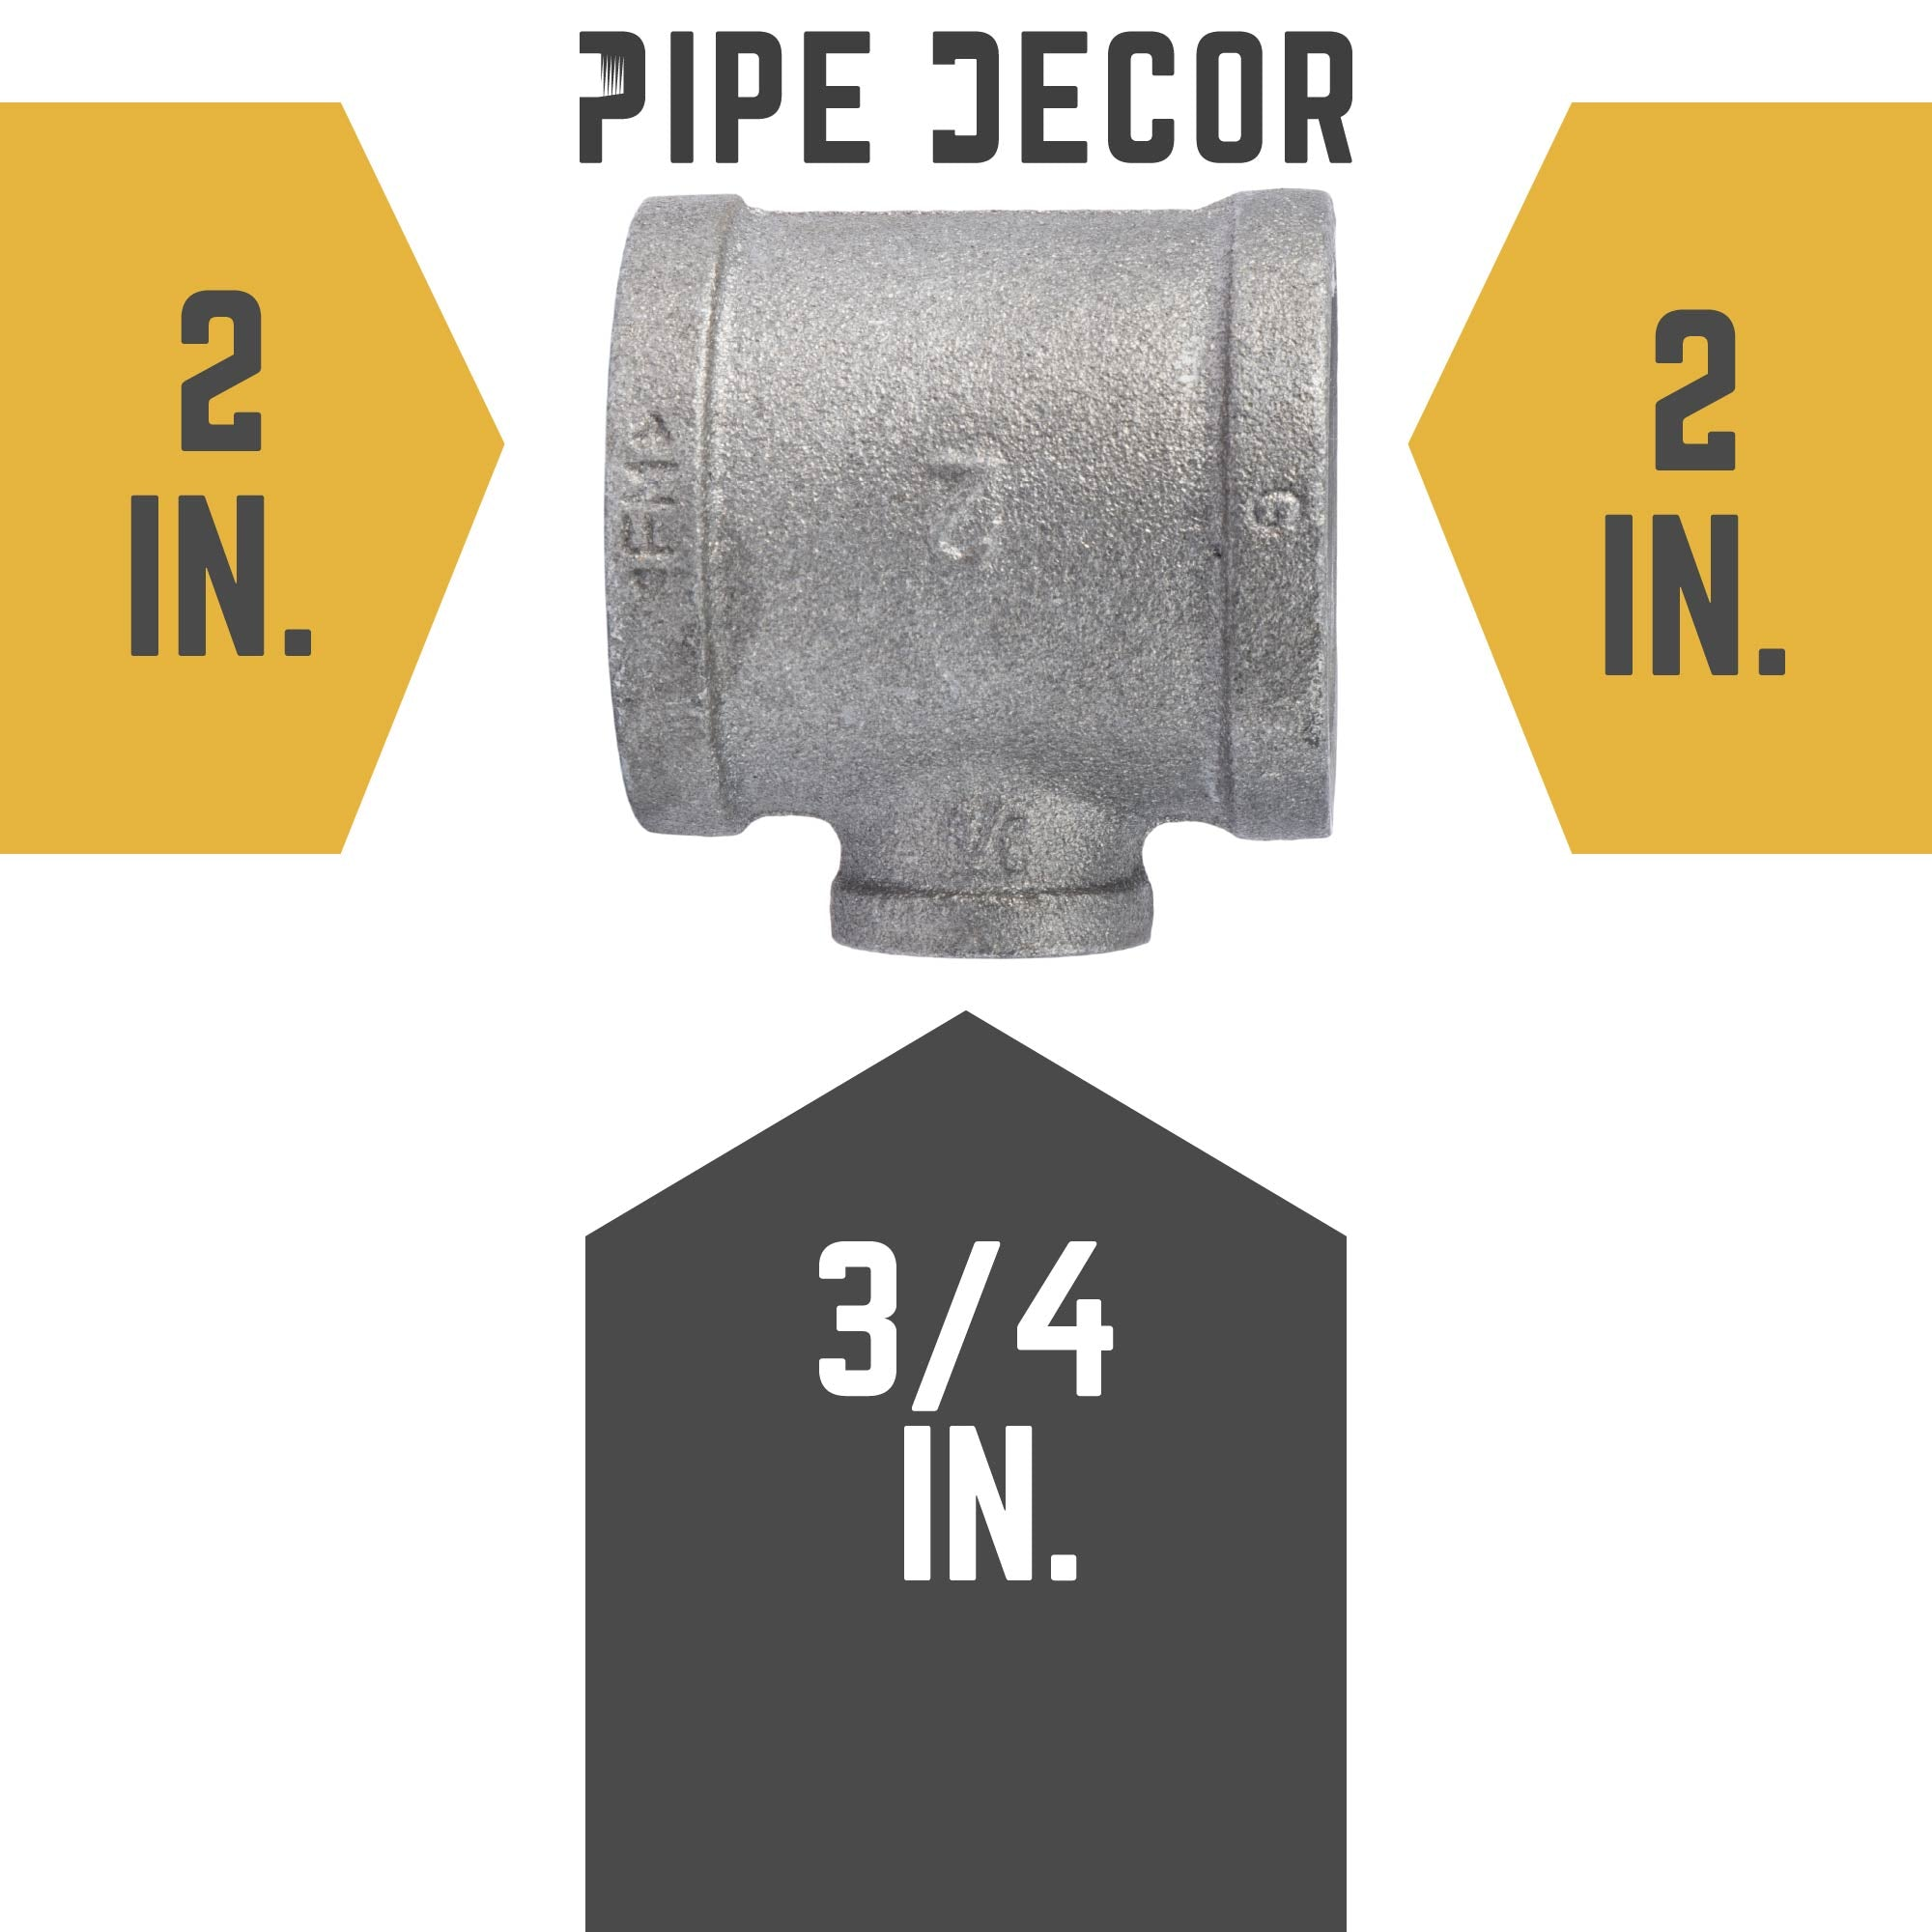 2 in. X 2 in. X 3/4 Black Reducing Tee - Pipe Decor